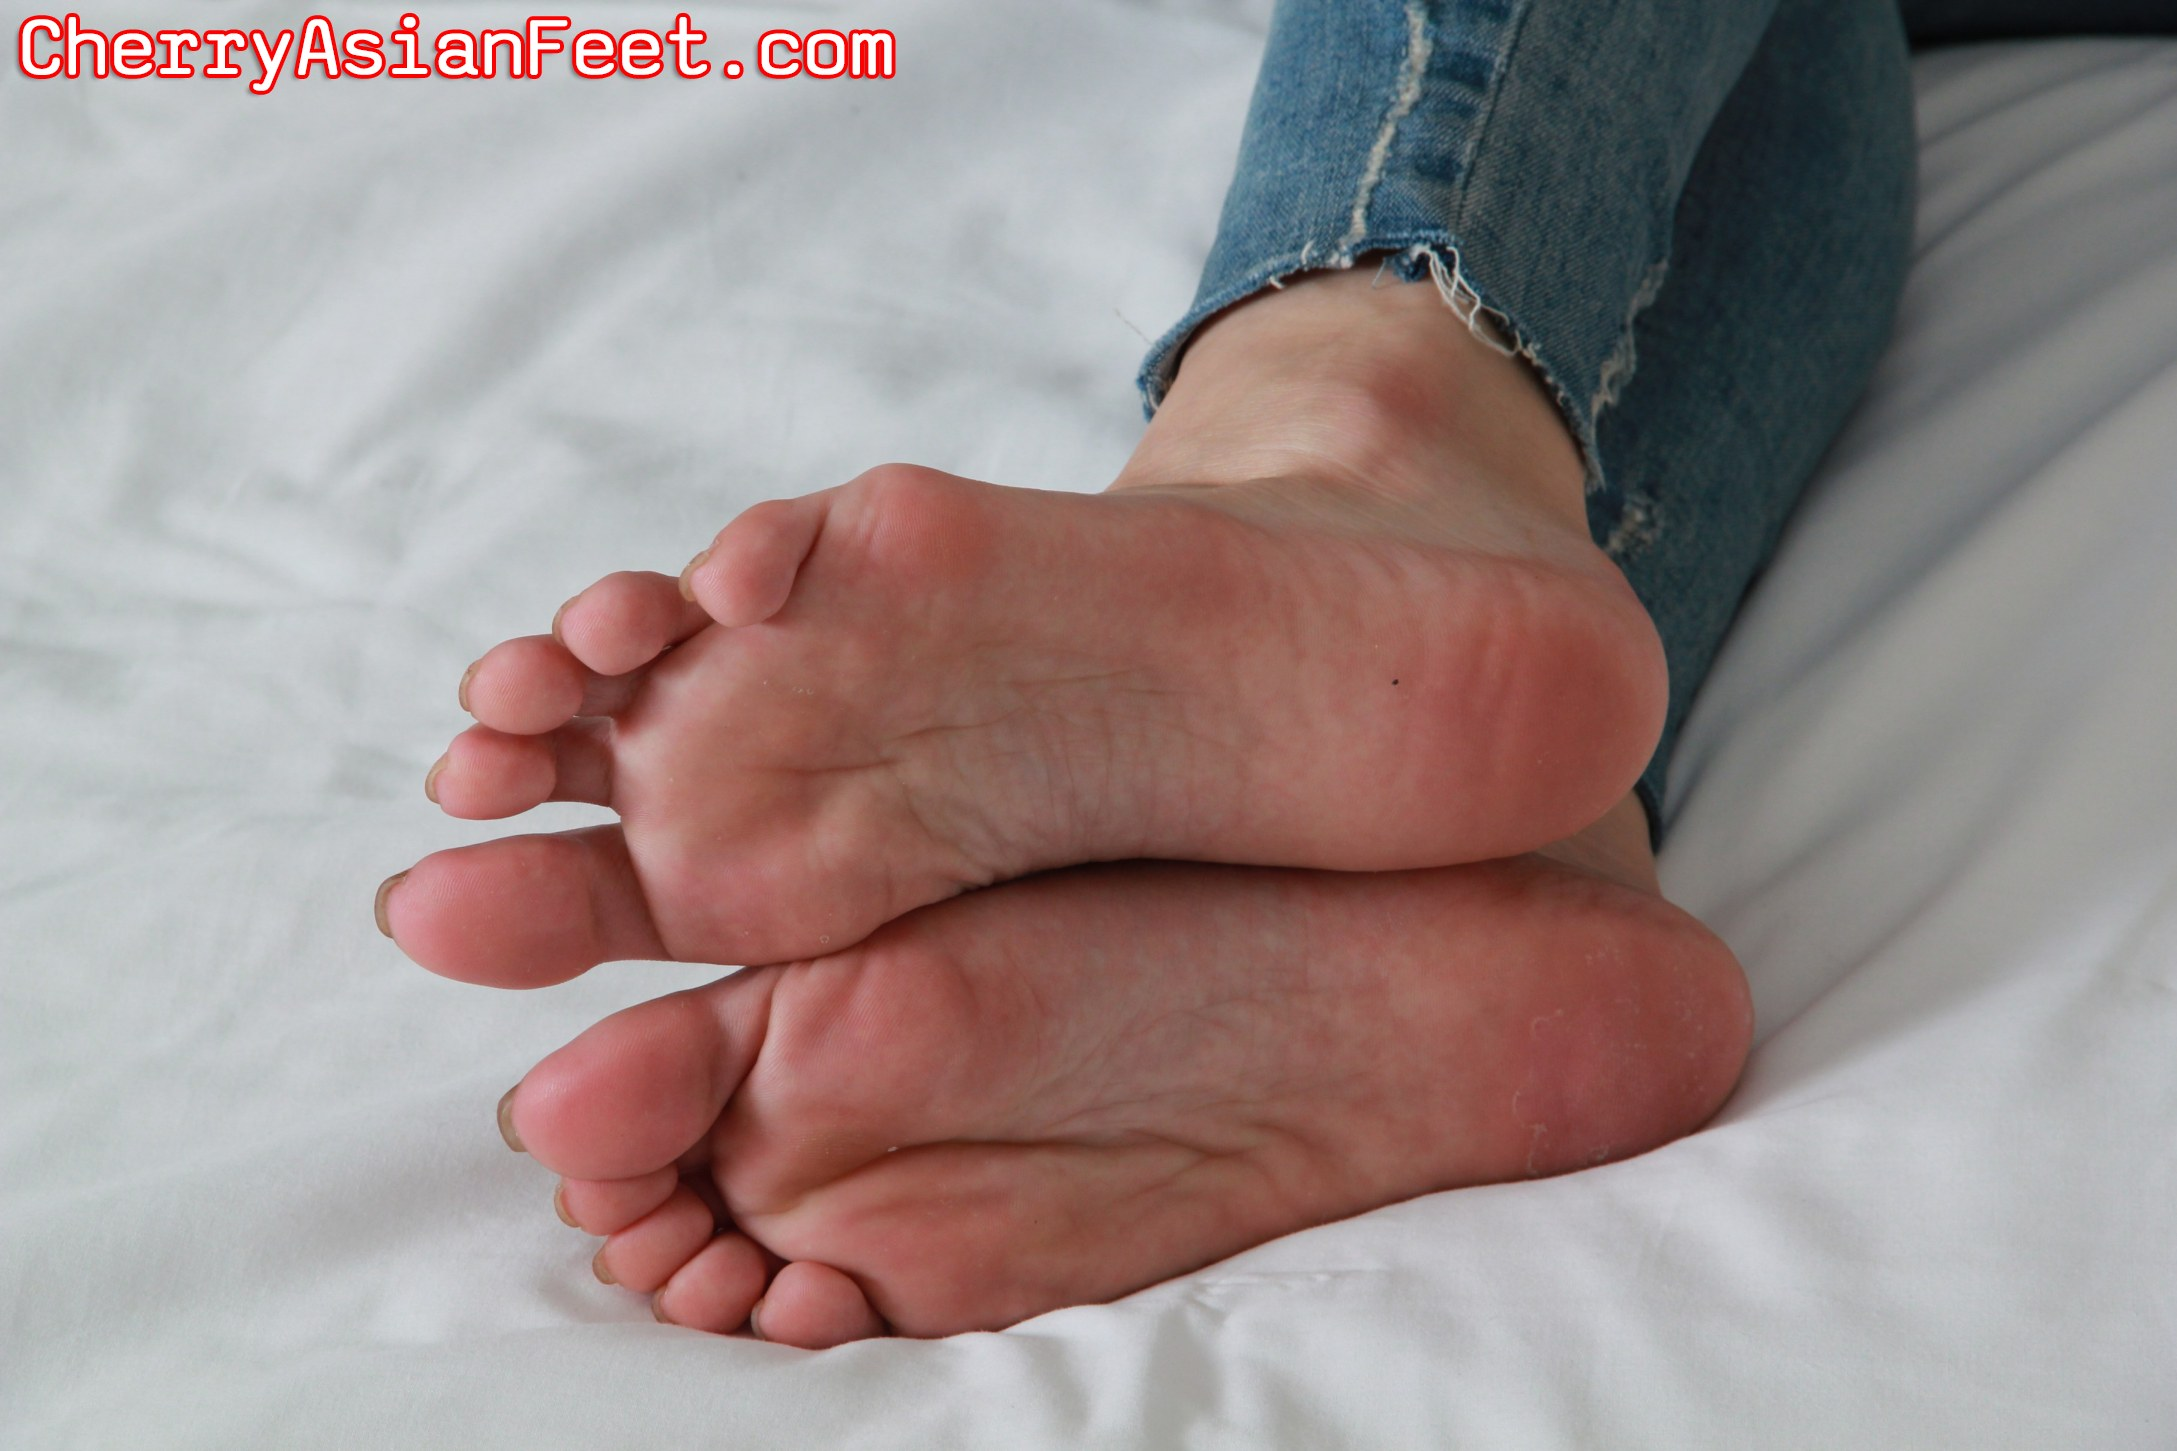 domination female foot links